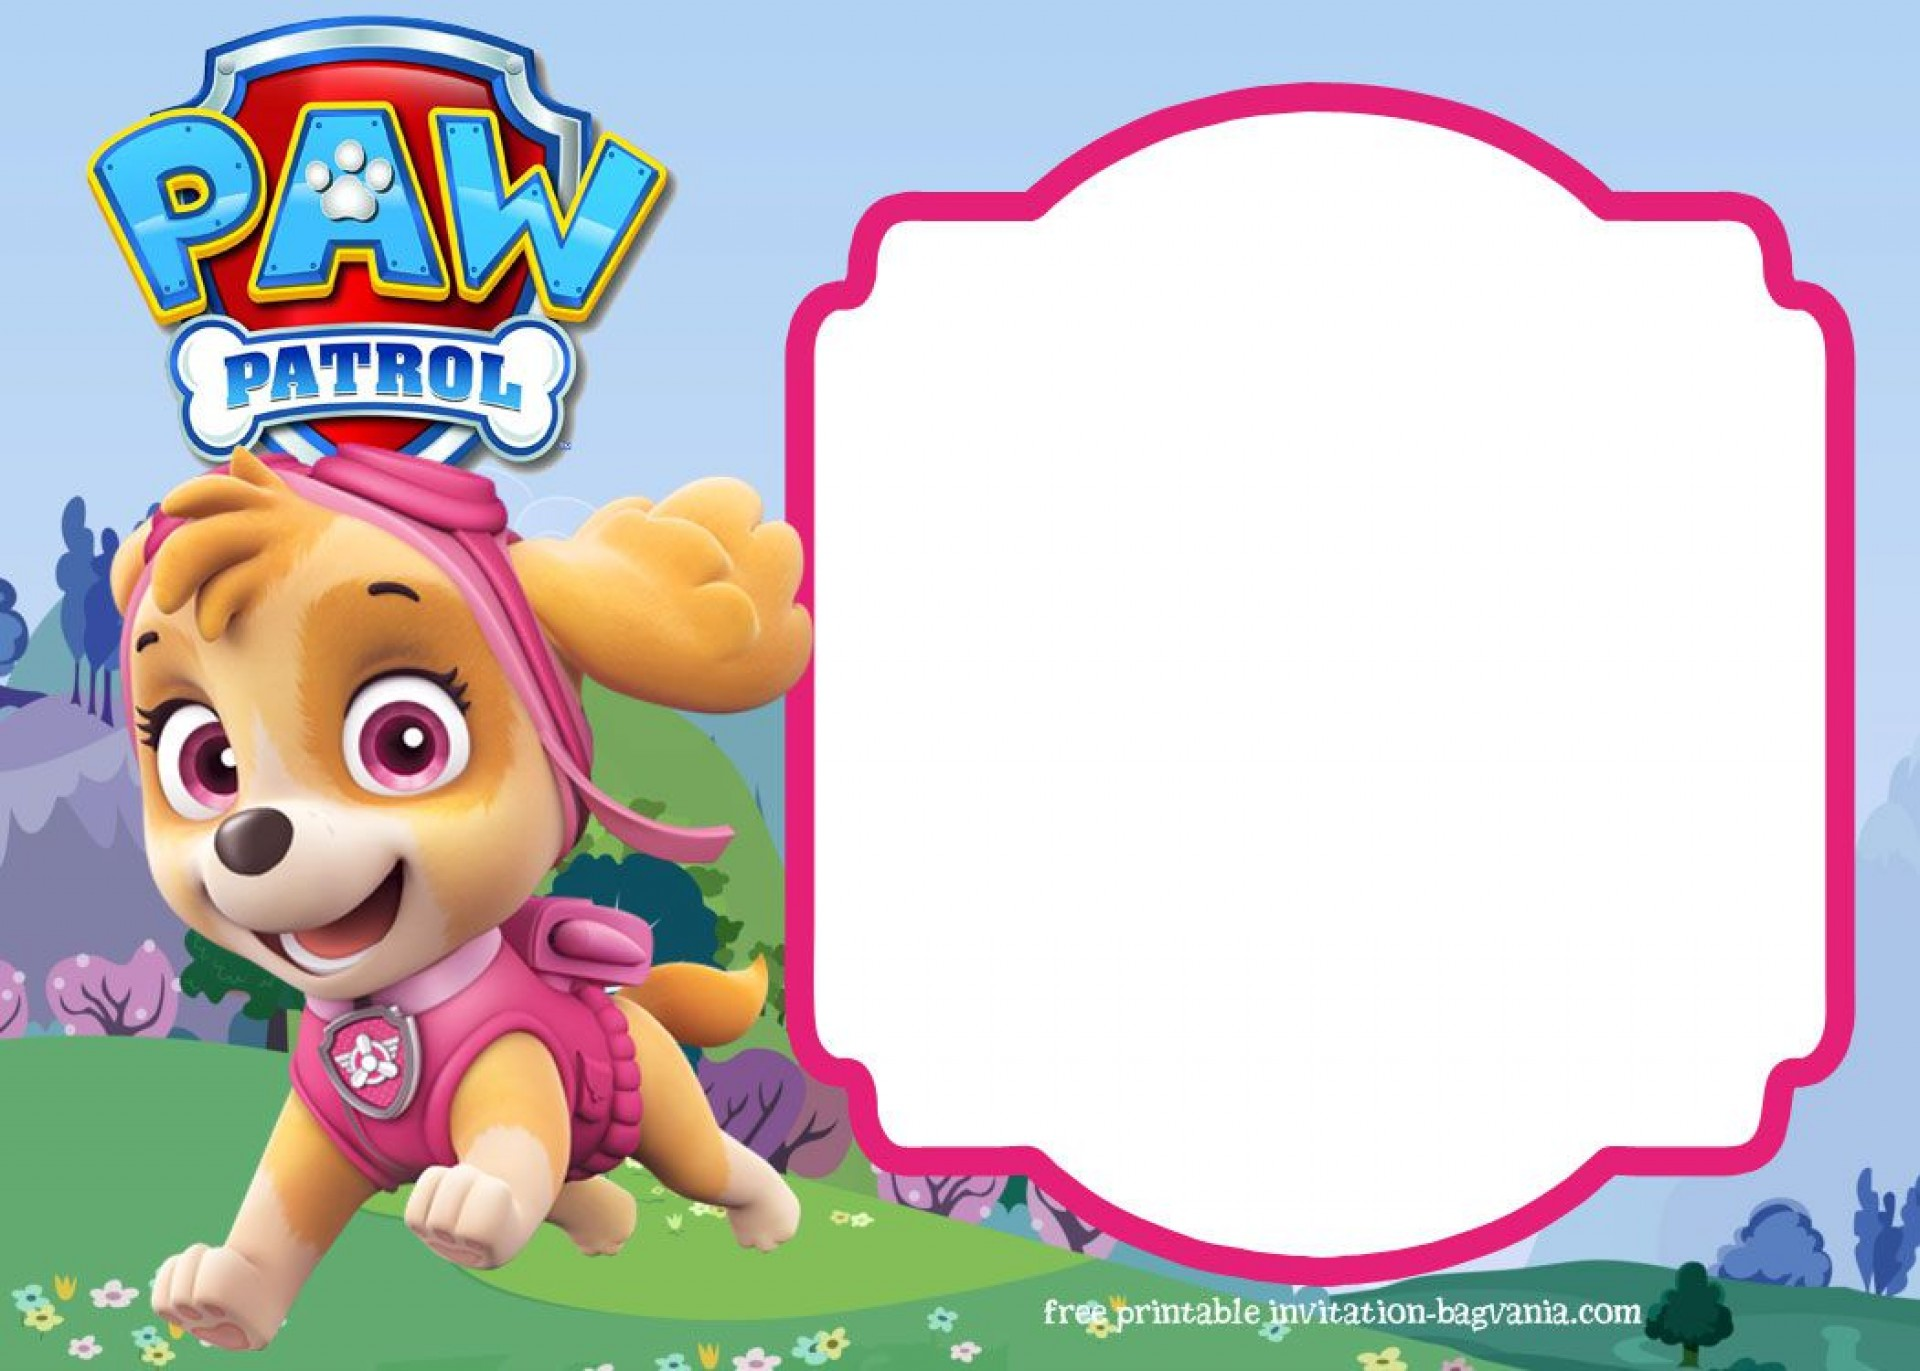 007 Unforgettable Paw Patrol Birthday Invitation Template Highest Quality  Party Invite Wording Skye Free1920